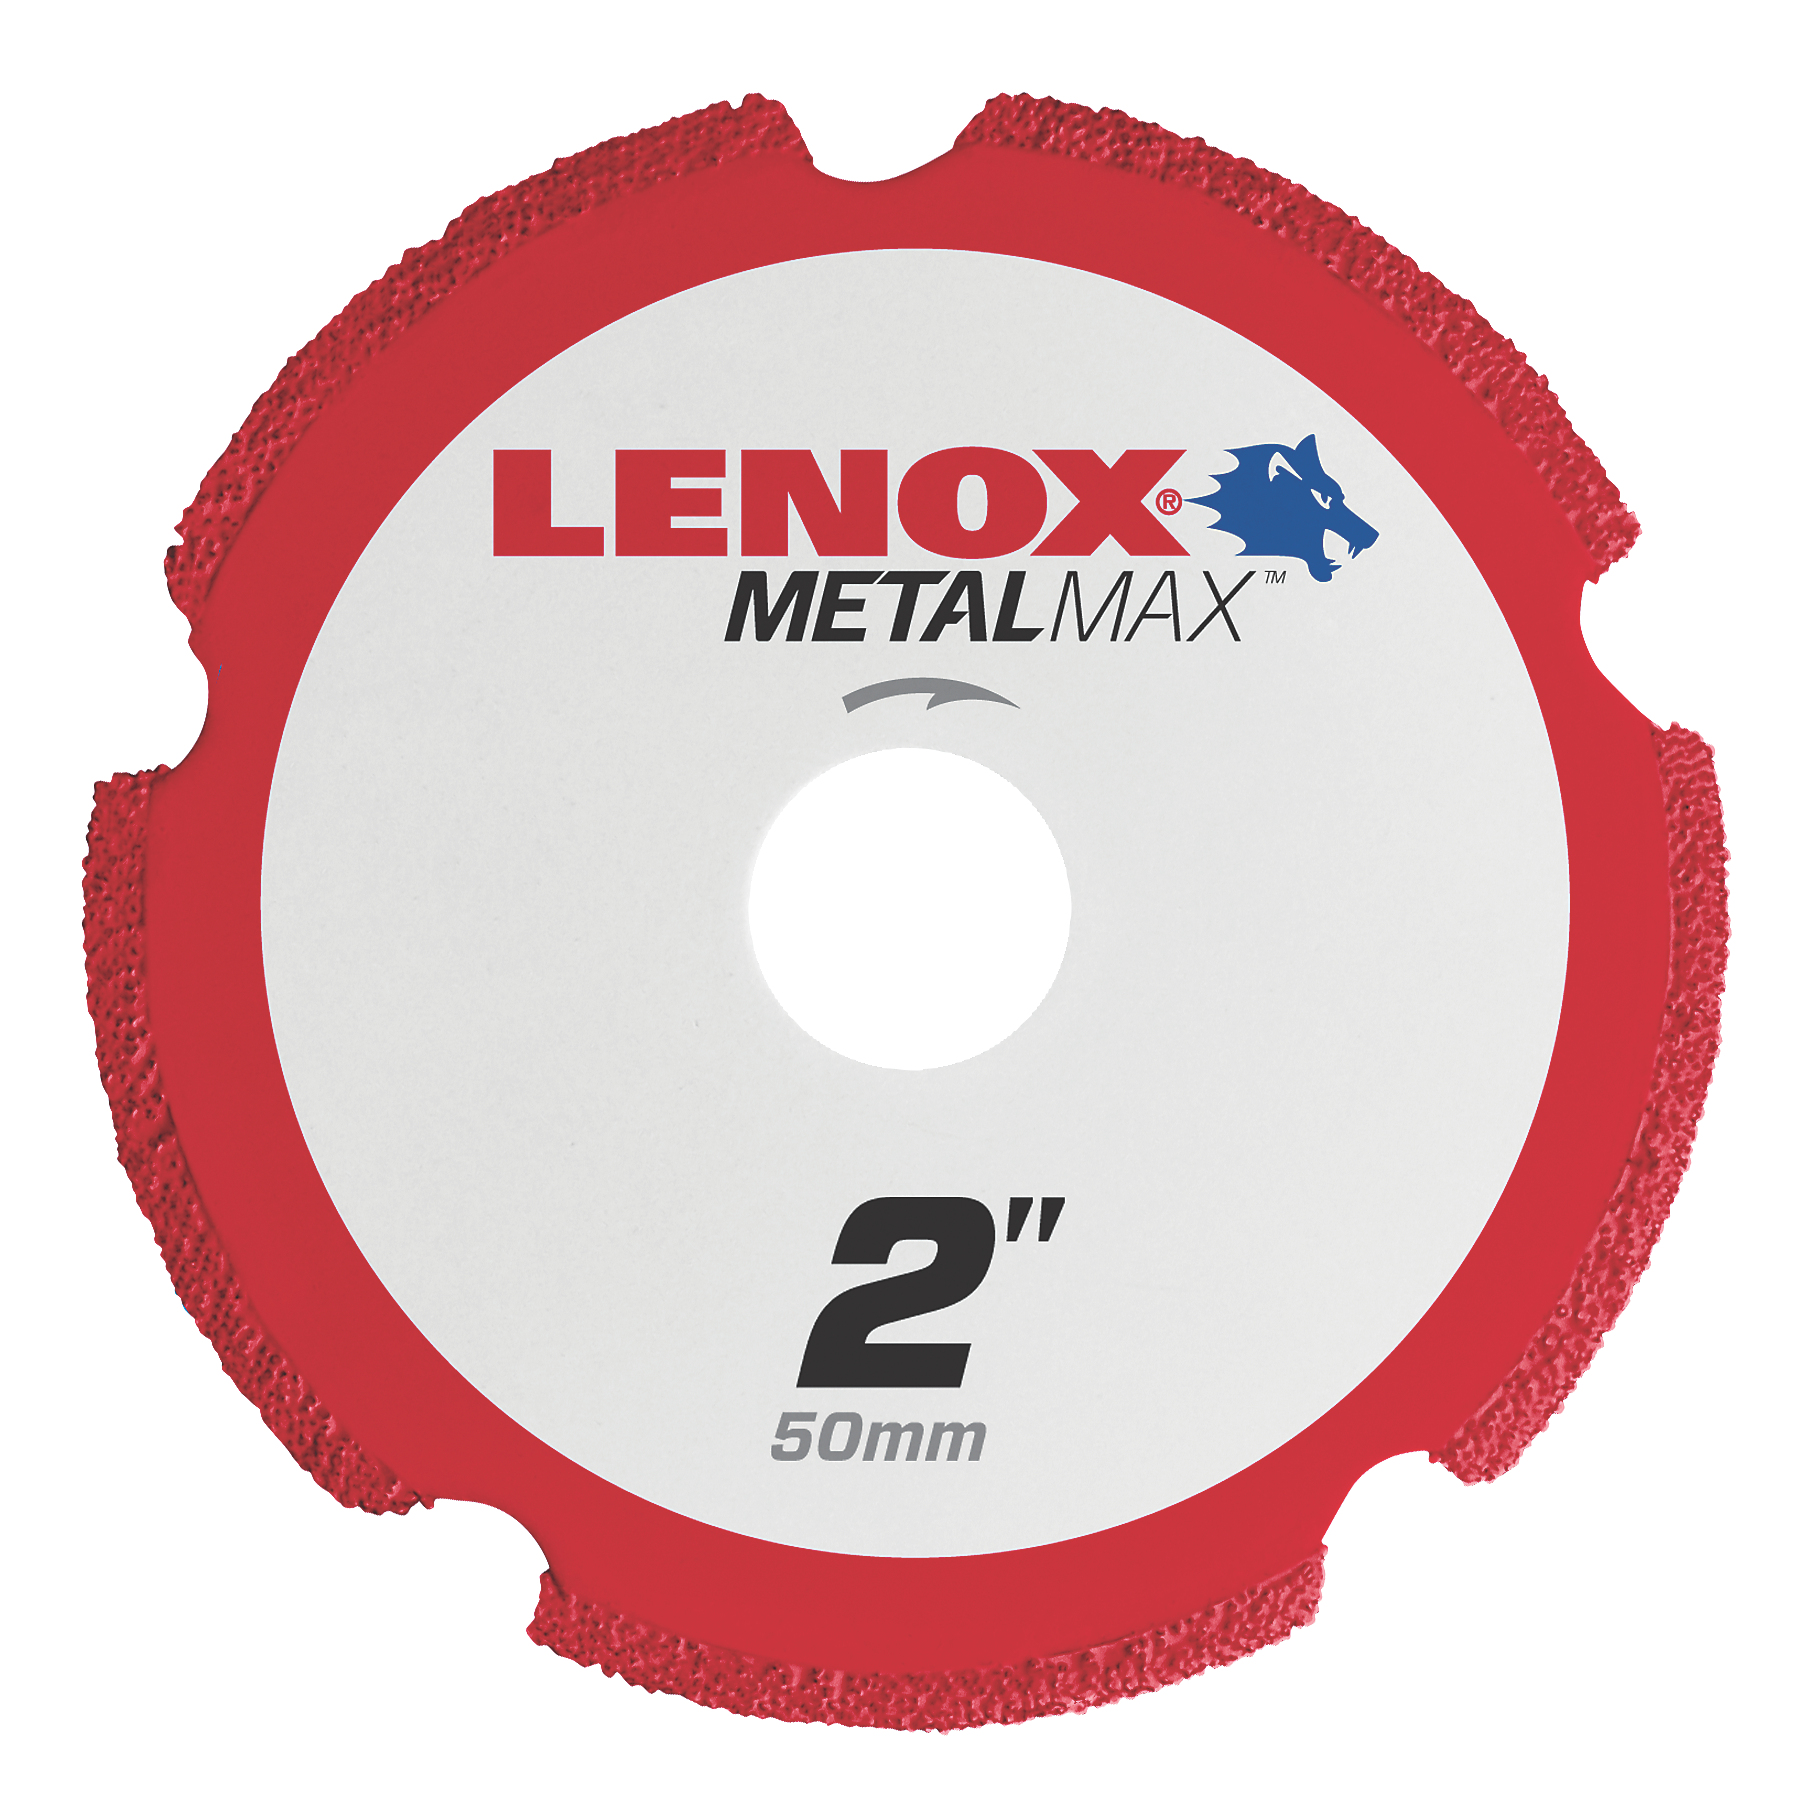 LENOX® TOOLS METALMAX™ 1972917 METALMAX™ Type 1 Cut-Off Wheel, 2 in Dia x 0.05 in THK, 3/8 in Center Hole, 40/50 Grit, Diamond Abrasive